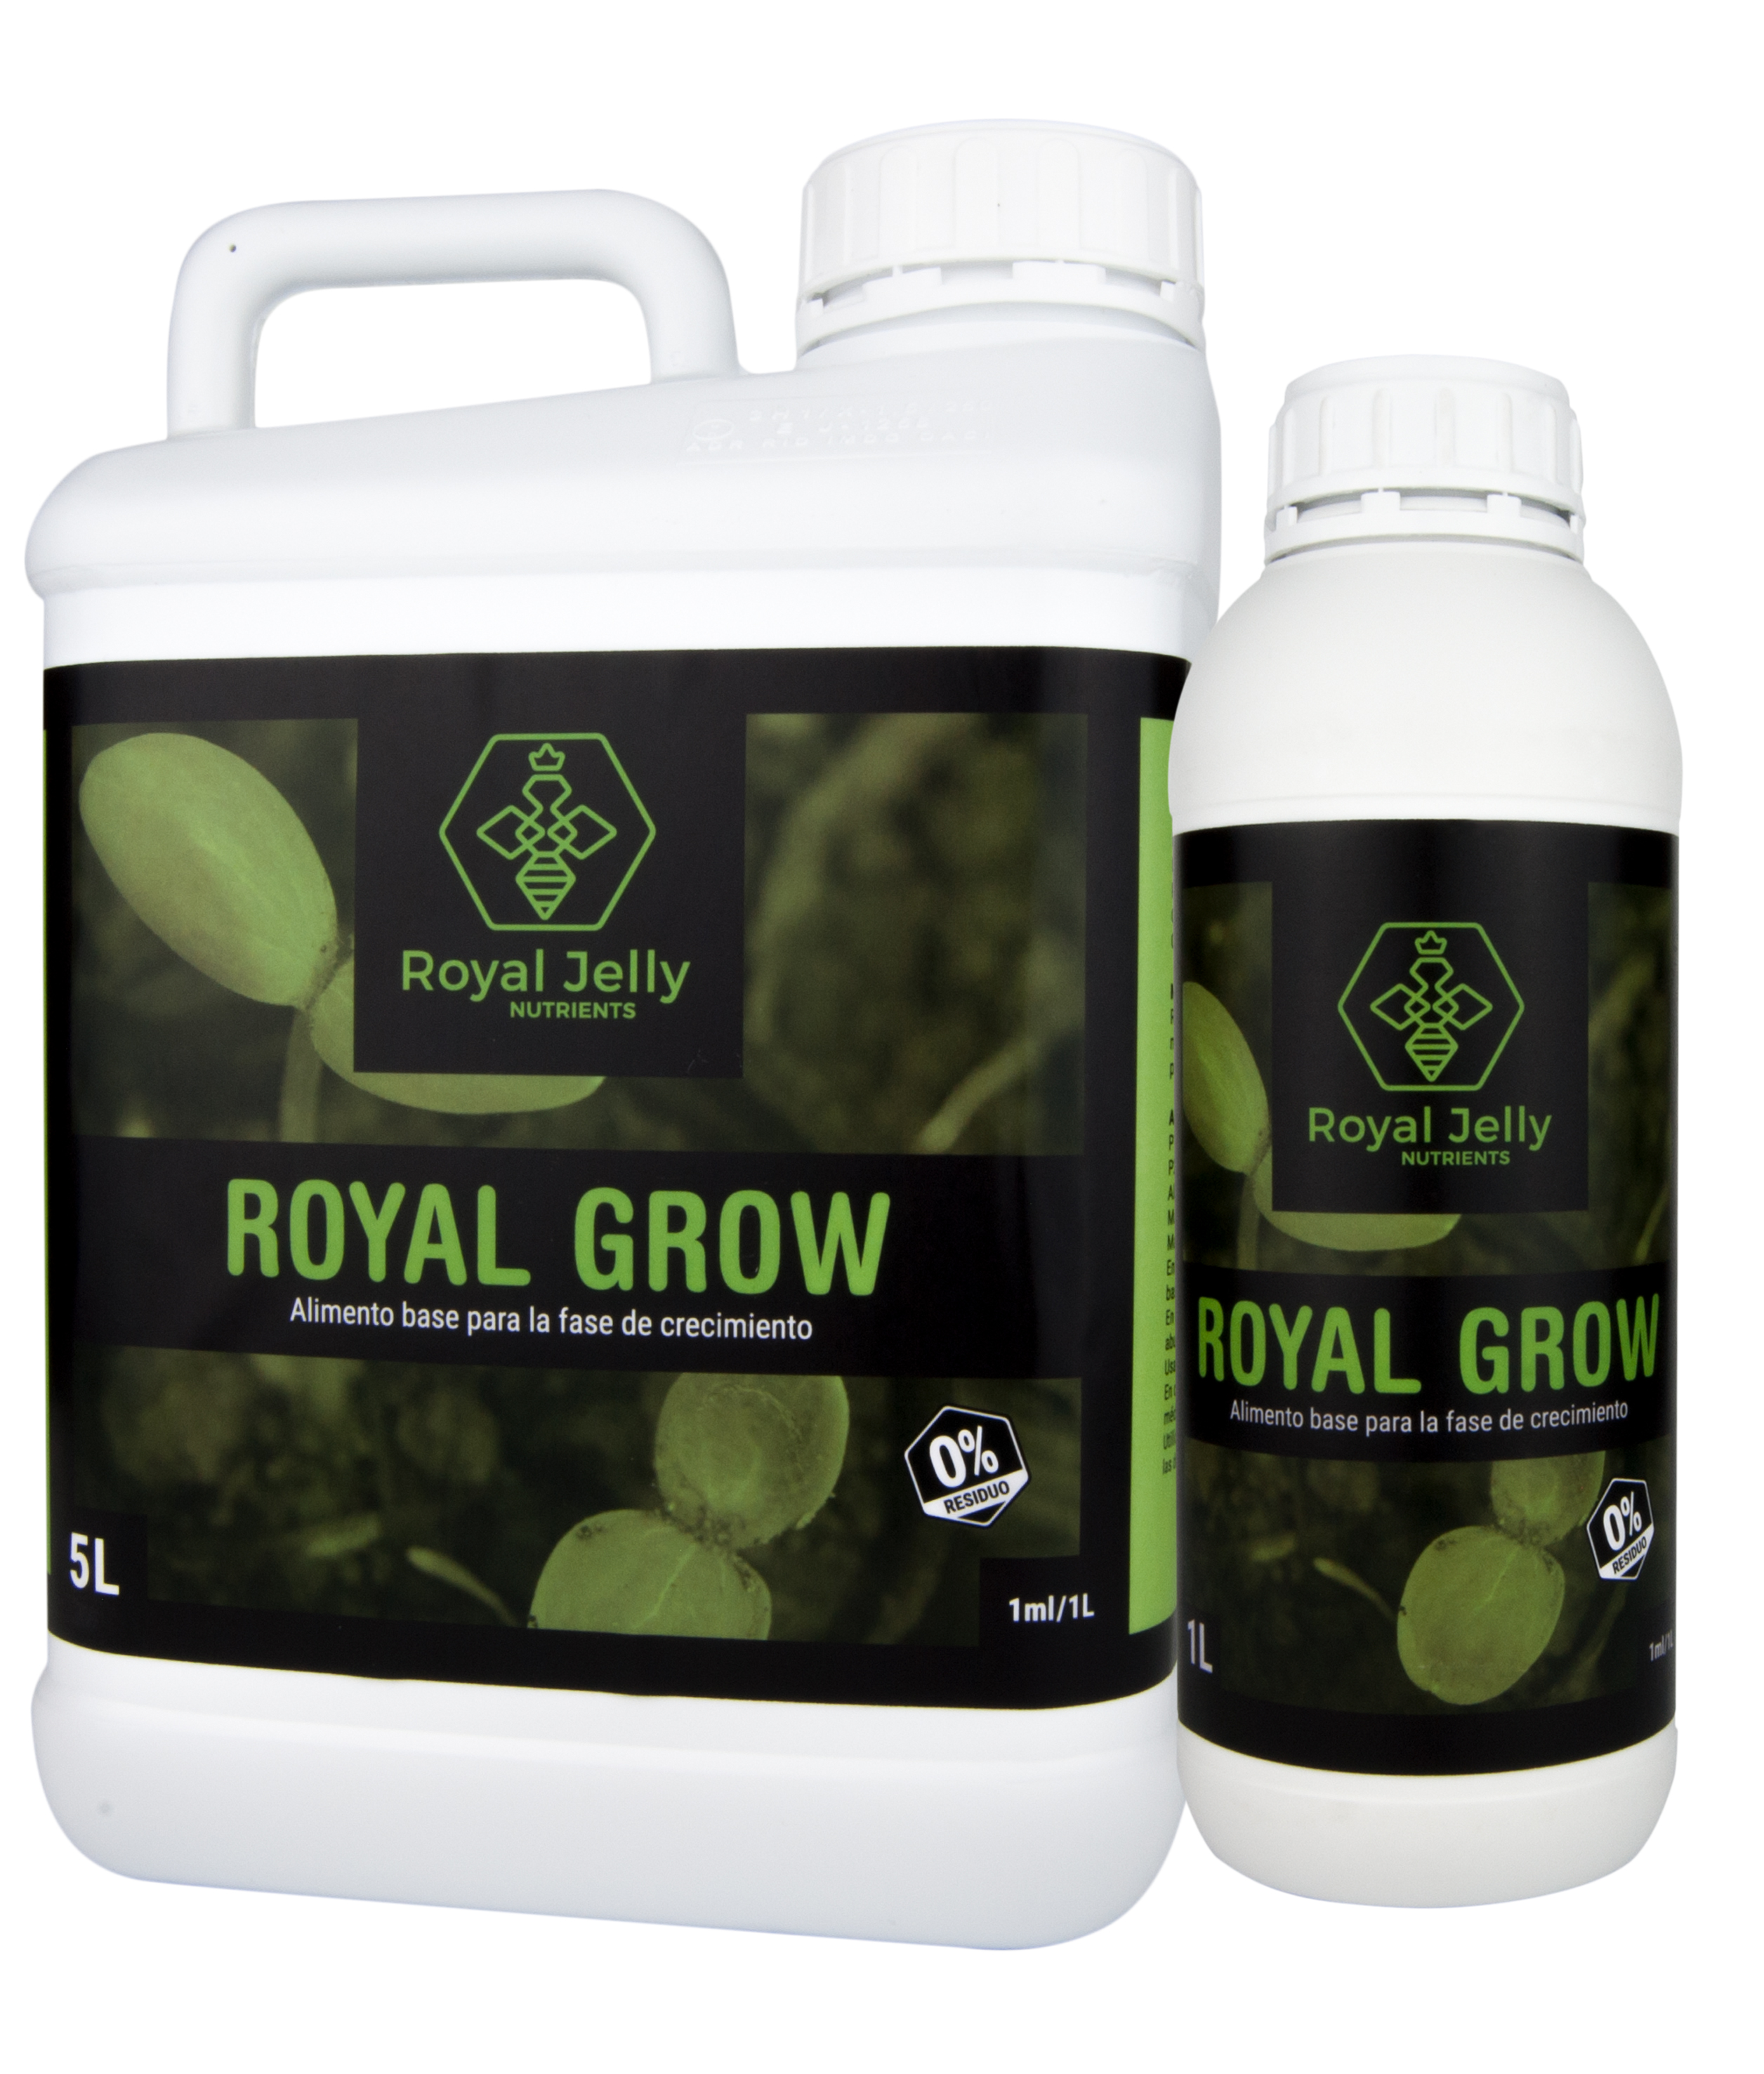 royal grow bodegó